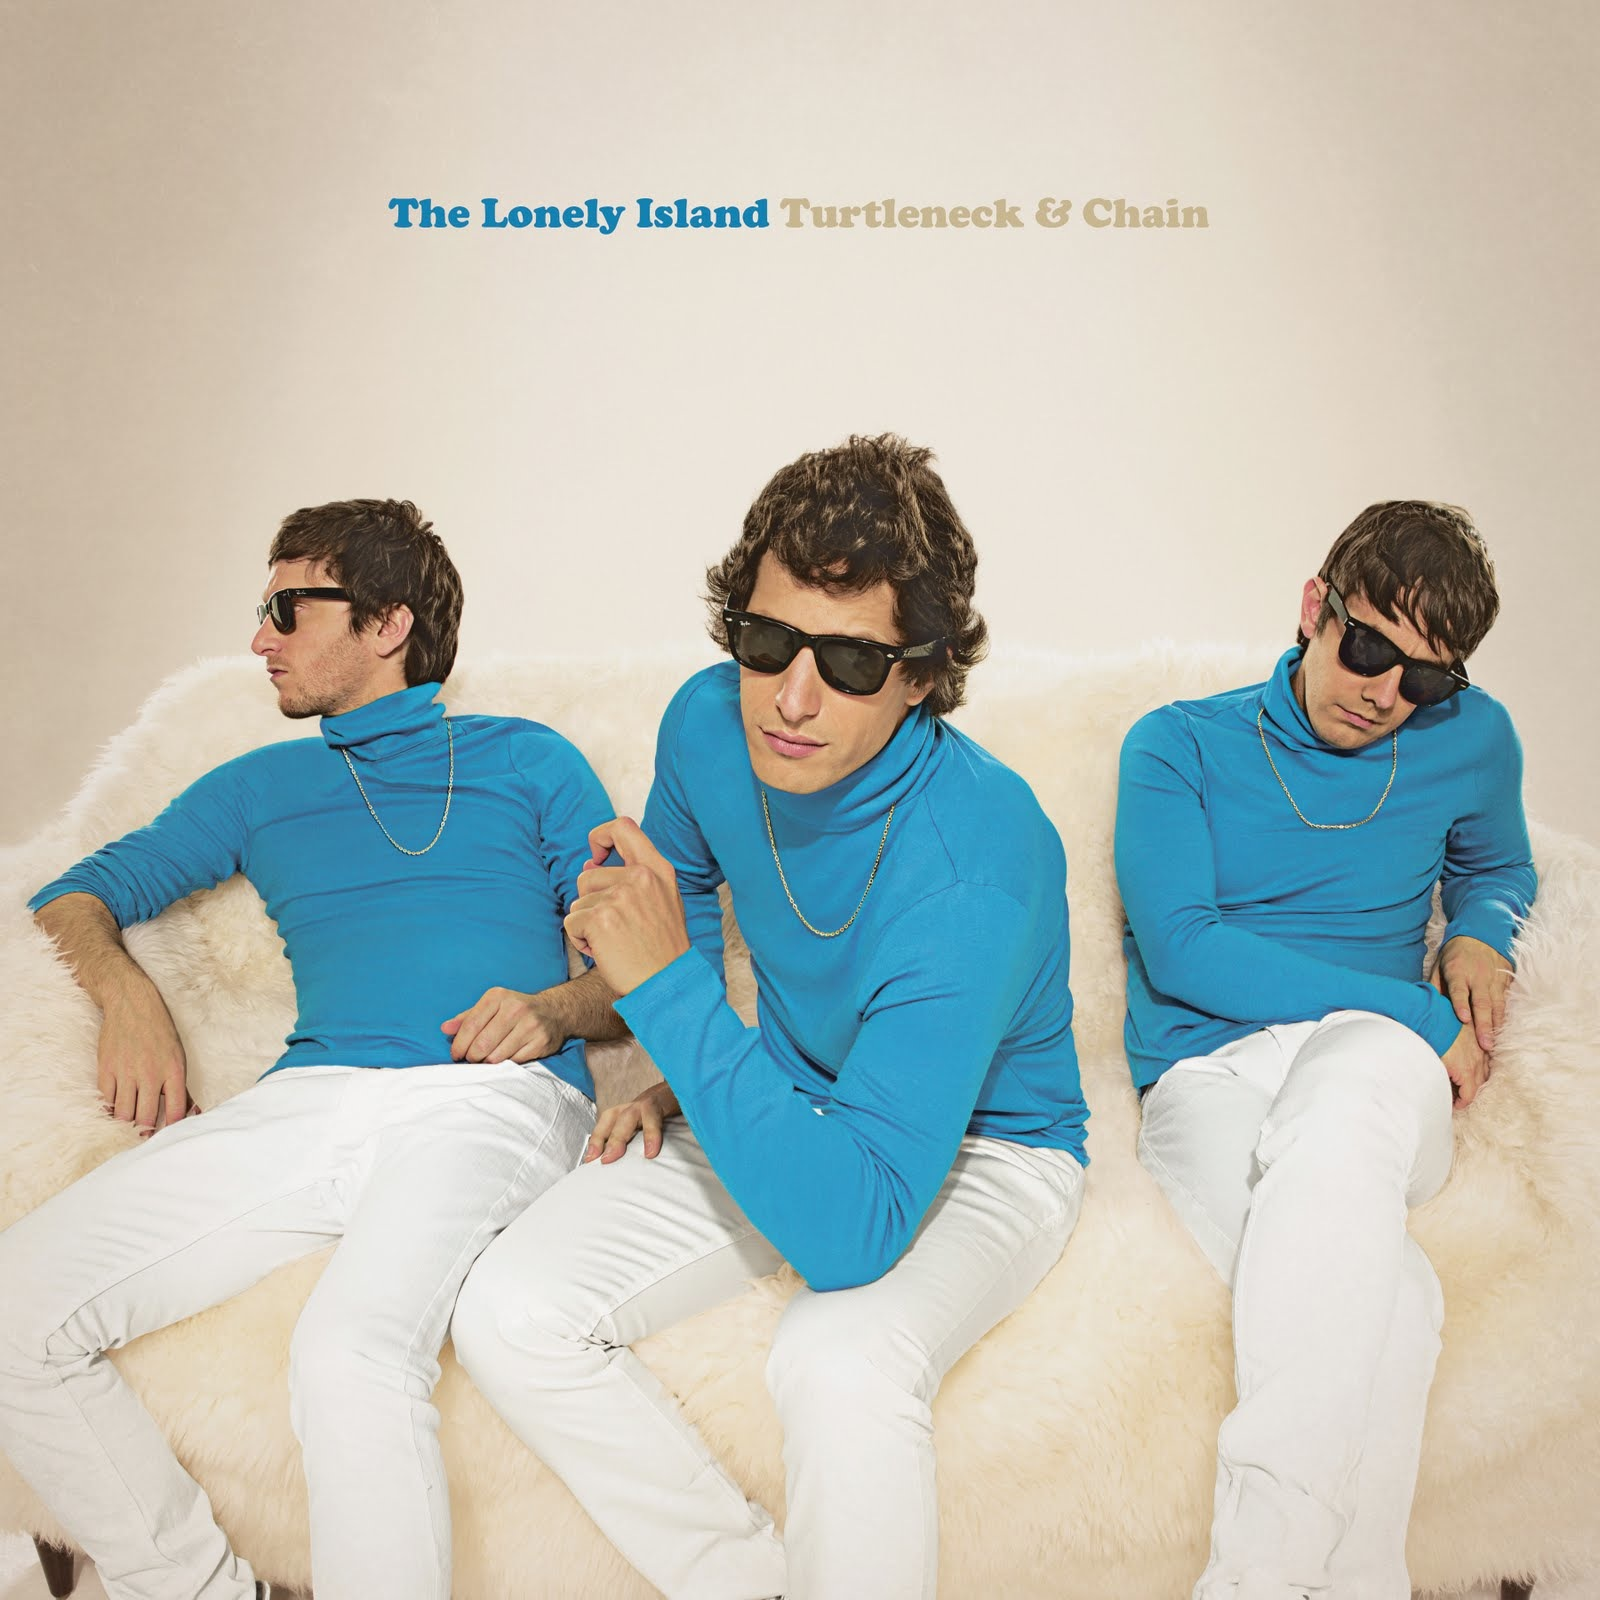 The Lonely Island &#8211; &#8220;We&#8217;re Back&#8221; Video &#038; <em>Turtleneck &#038; Chain</em> Info